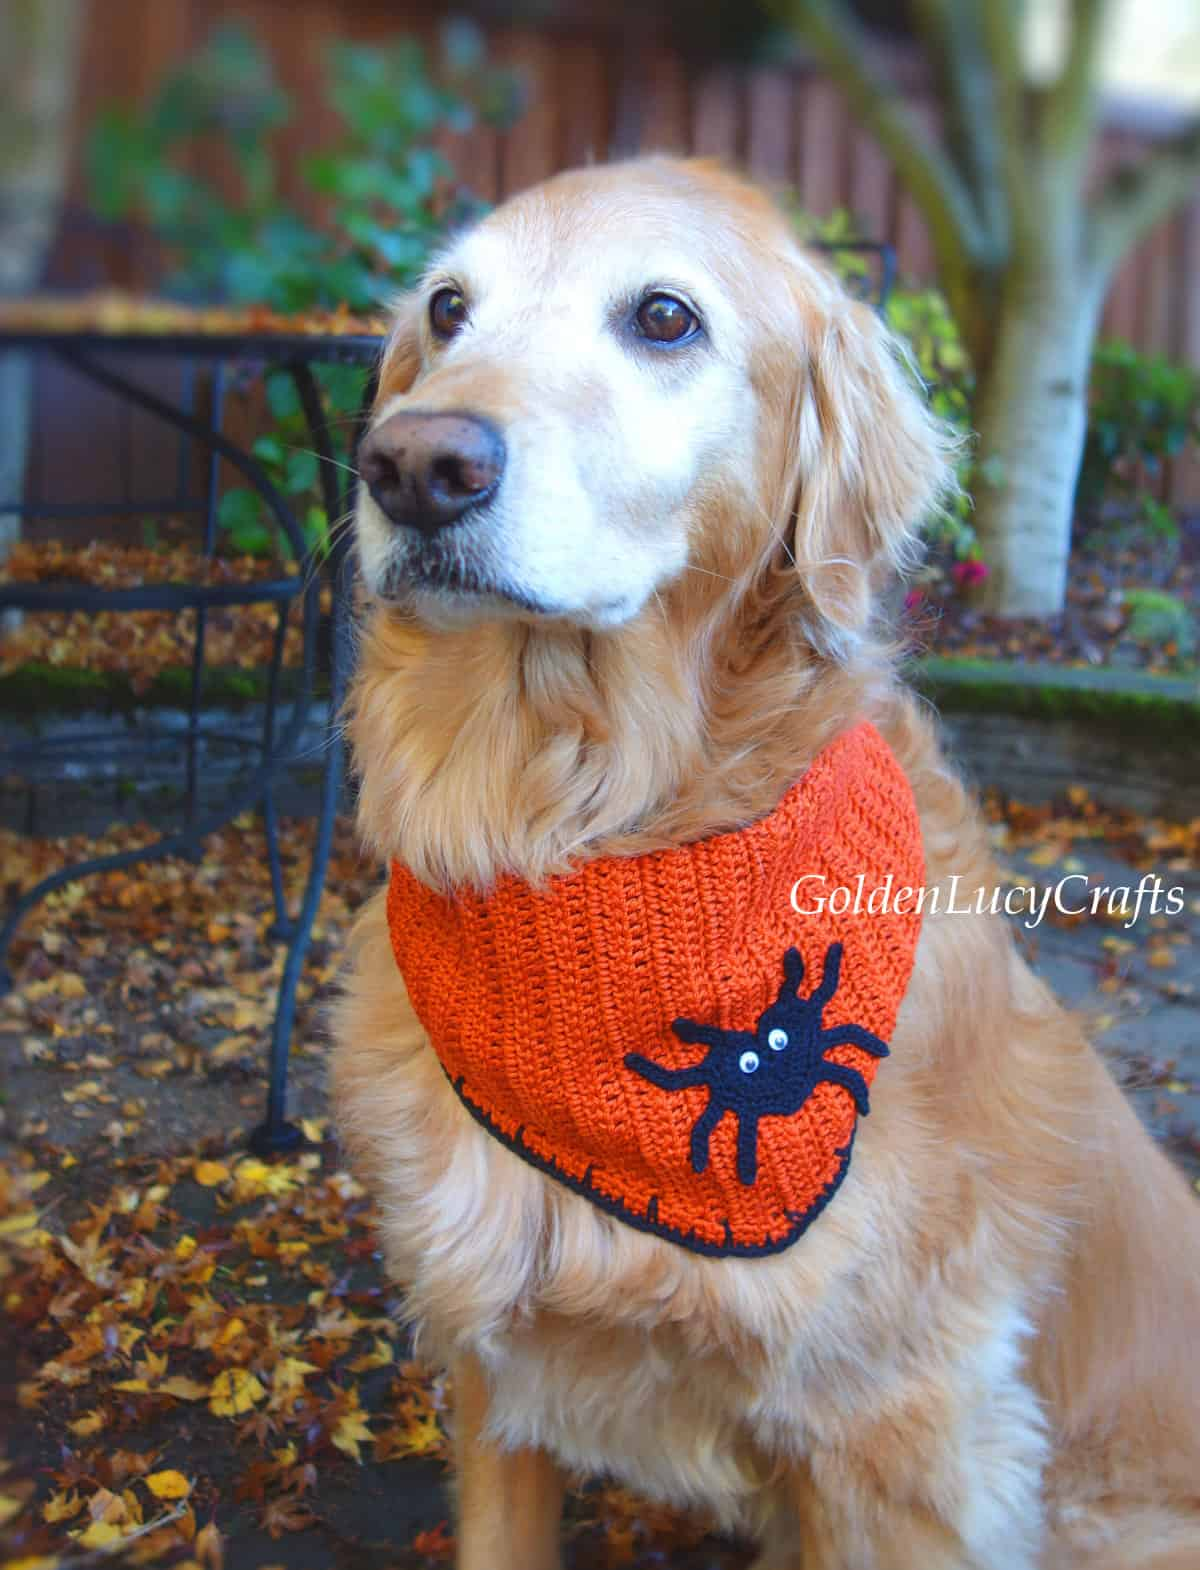 Golden retriever dressed up for Halloween.